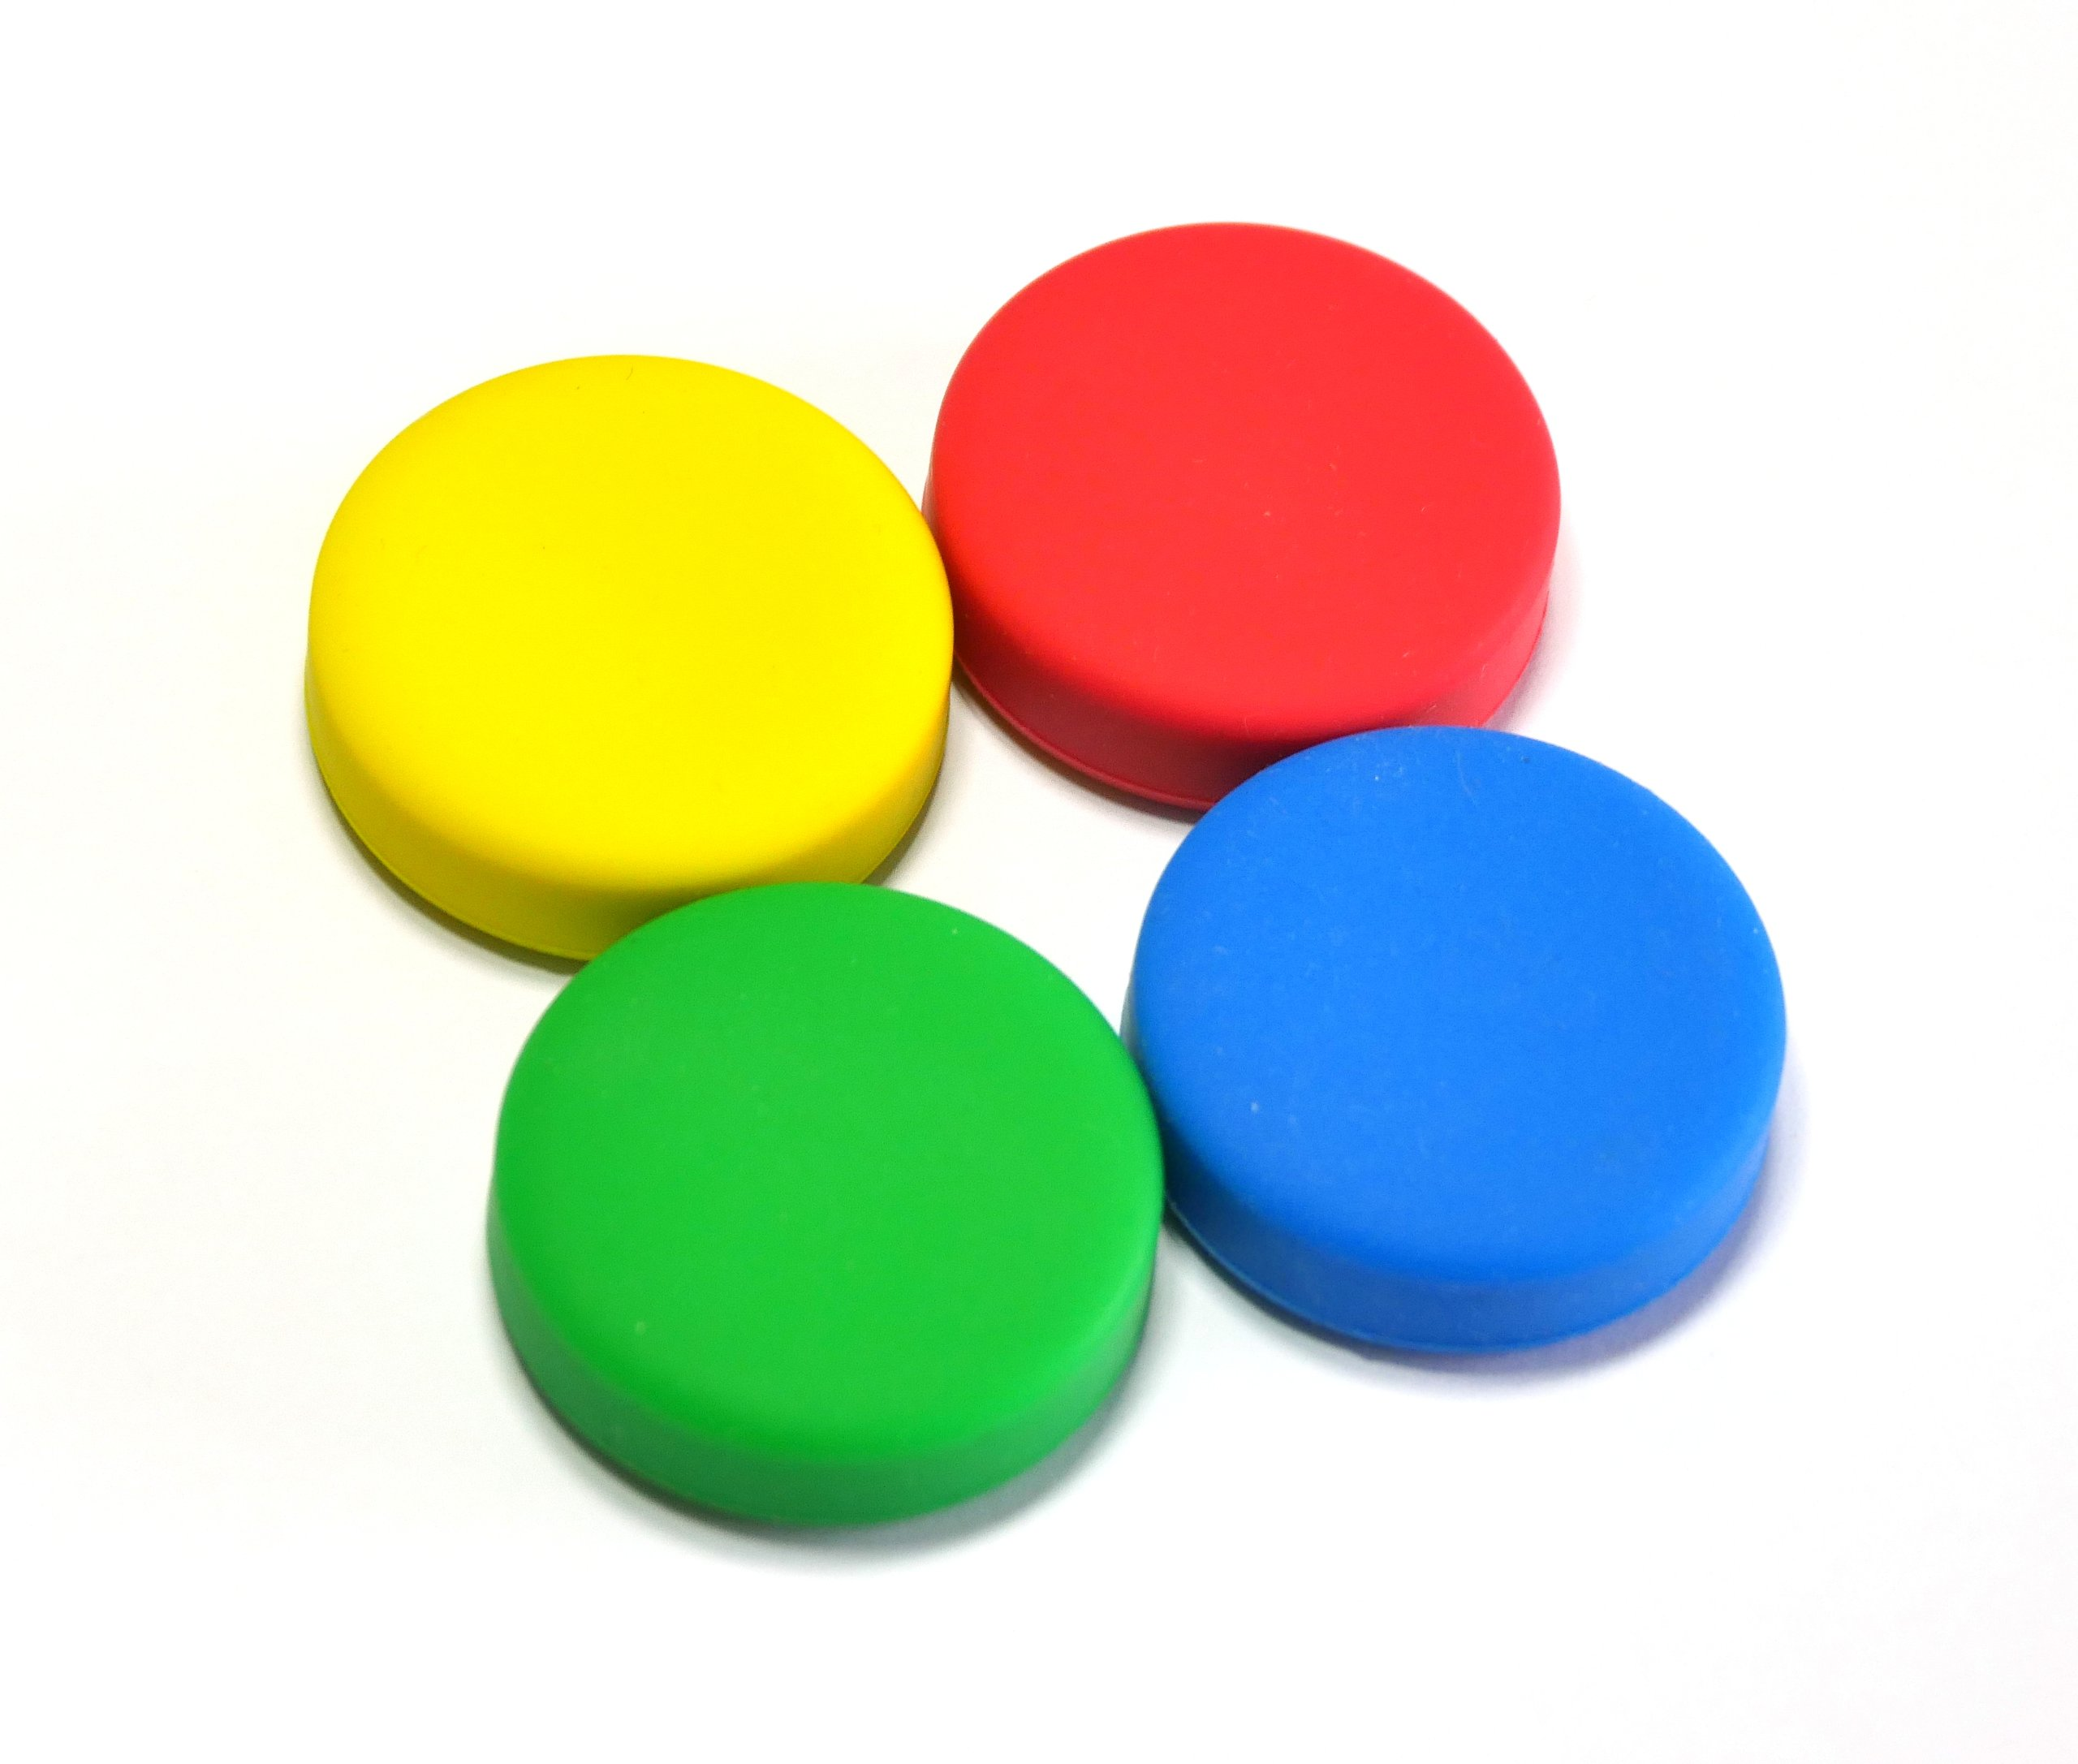 puck js cases  red  yellow  green  blue  from gfwilliams